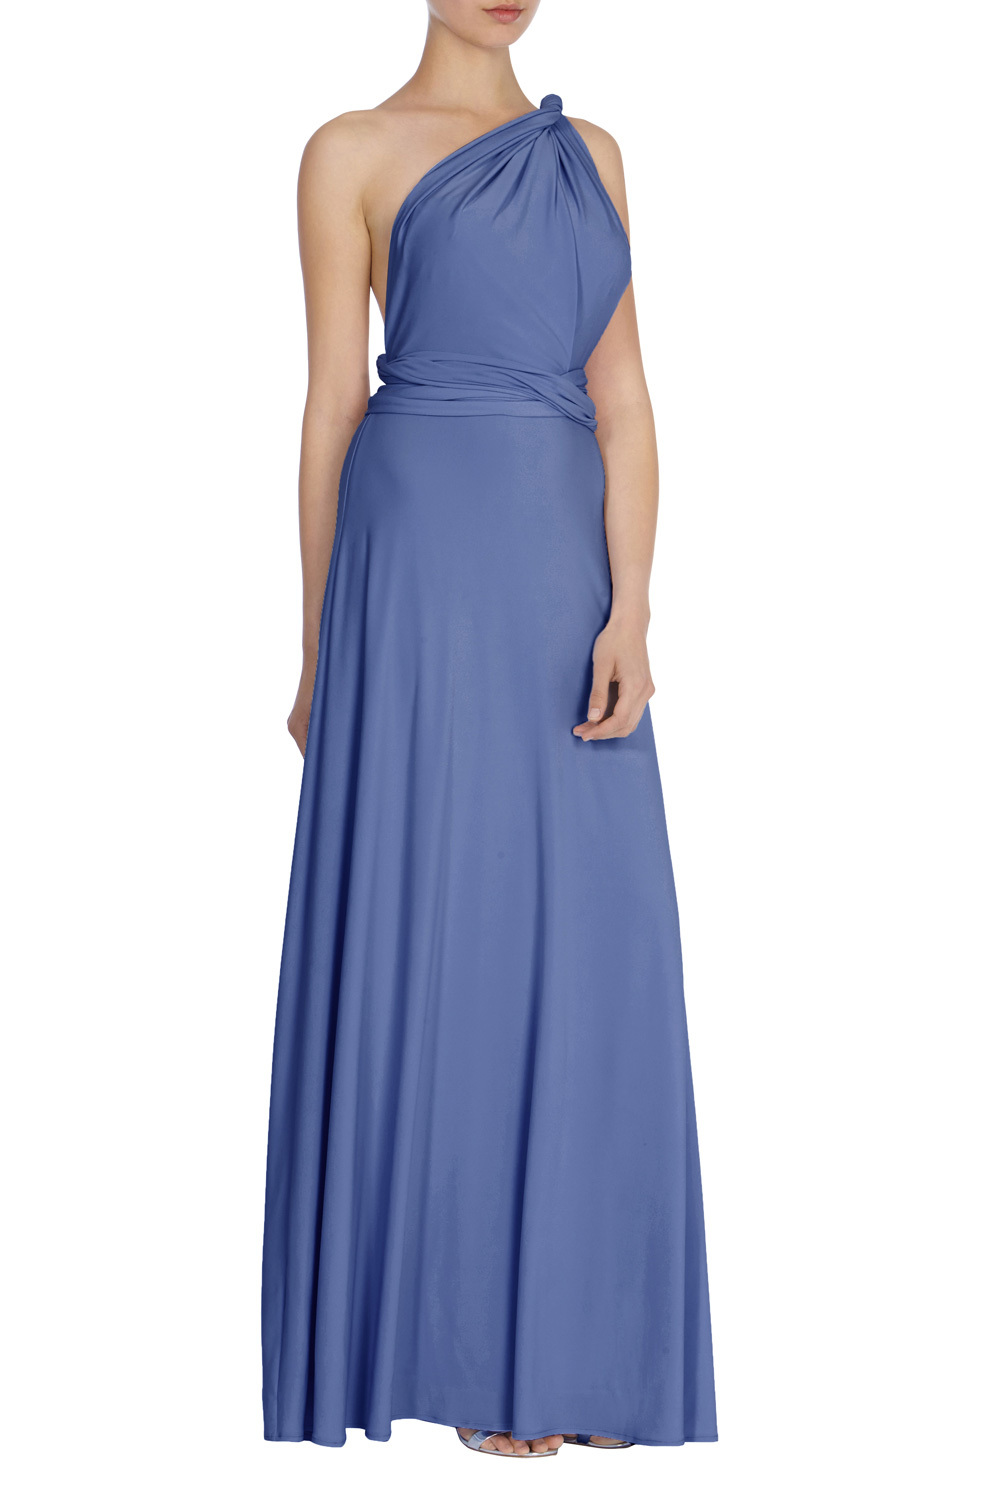 Corwin Multi Tie Maxi Sl - style: ballgown; fit: fitted at waist; pattern: plain; sleeve style: sleeveless; neckline: asymmetric; waist detail: twist front waist detail/nipped in at waist on one side/soft pleats/draping/ruching/gathering waist detail; predominant colour: denim; length: floor length; fibres: polyester/polyamide - 100%; occasions: occasion; sleeve length: sleeveless; texture group: crepes; pattern type: fabric; season: s/s 2016